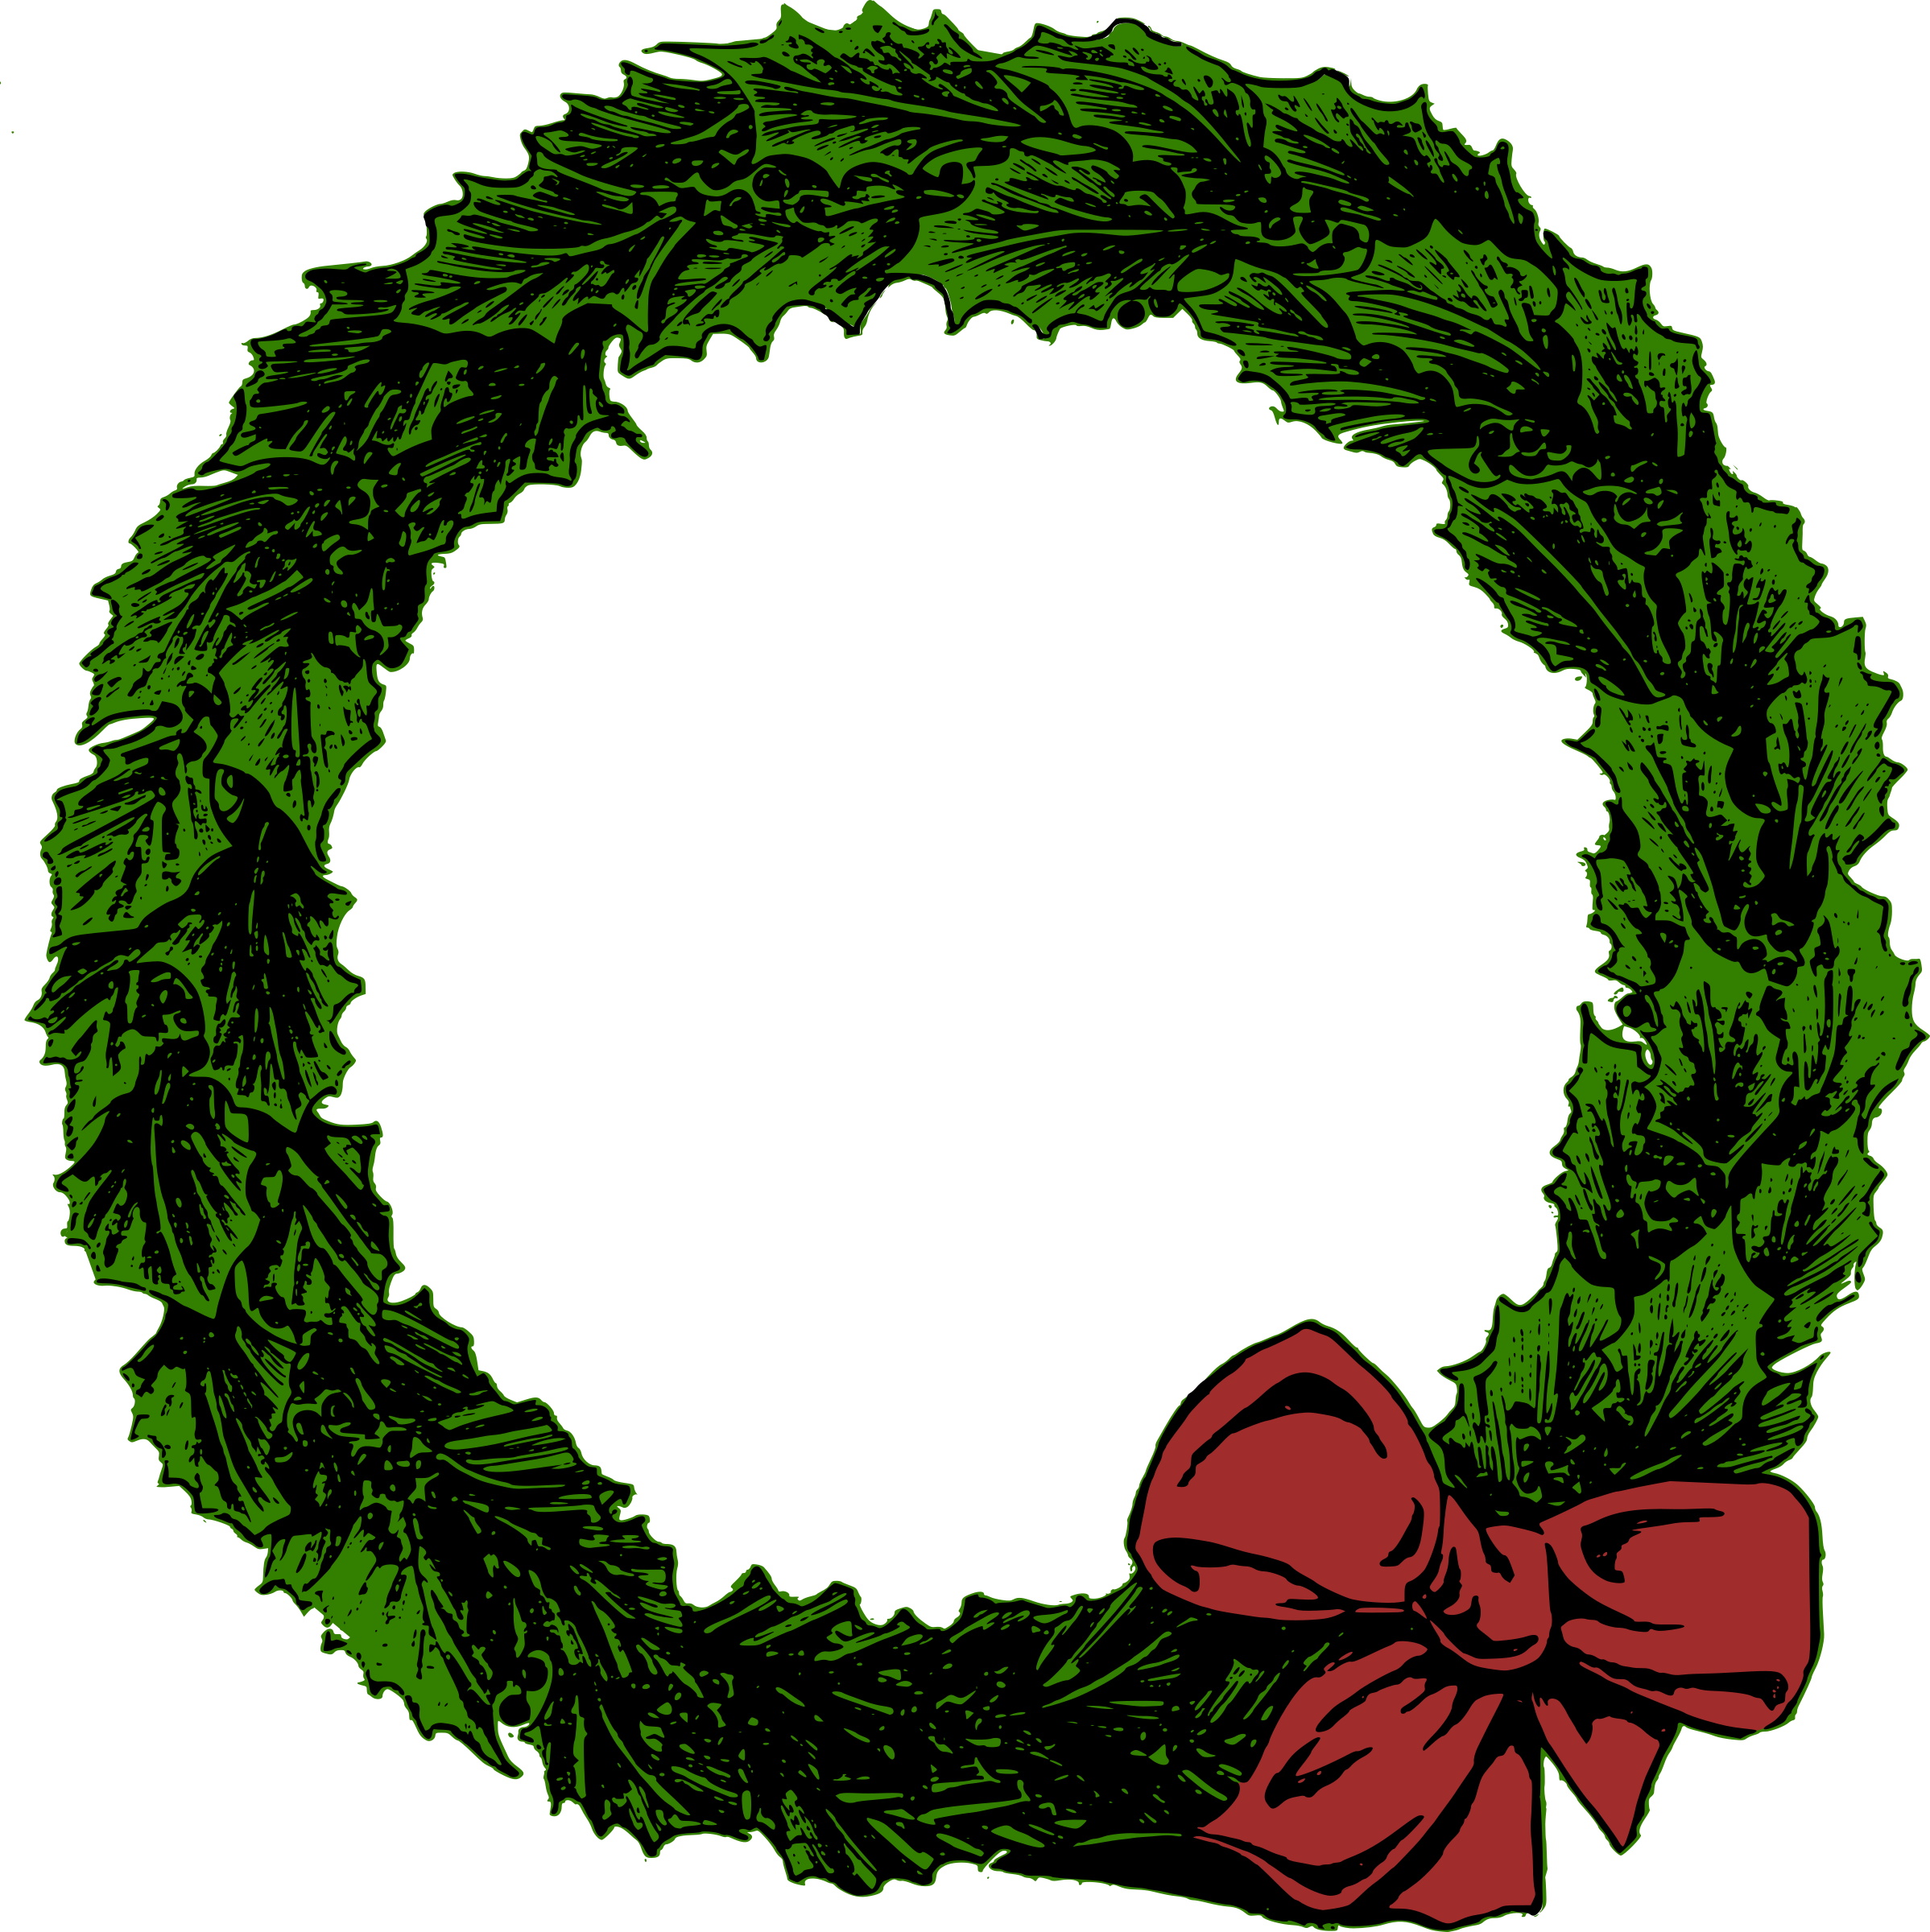 Xmas Wreath by j4p4n